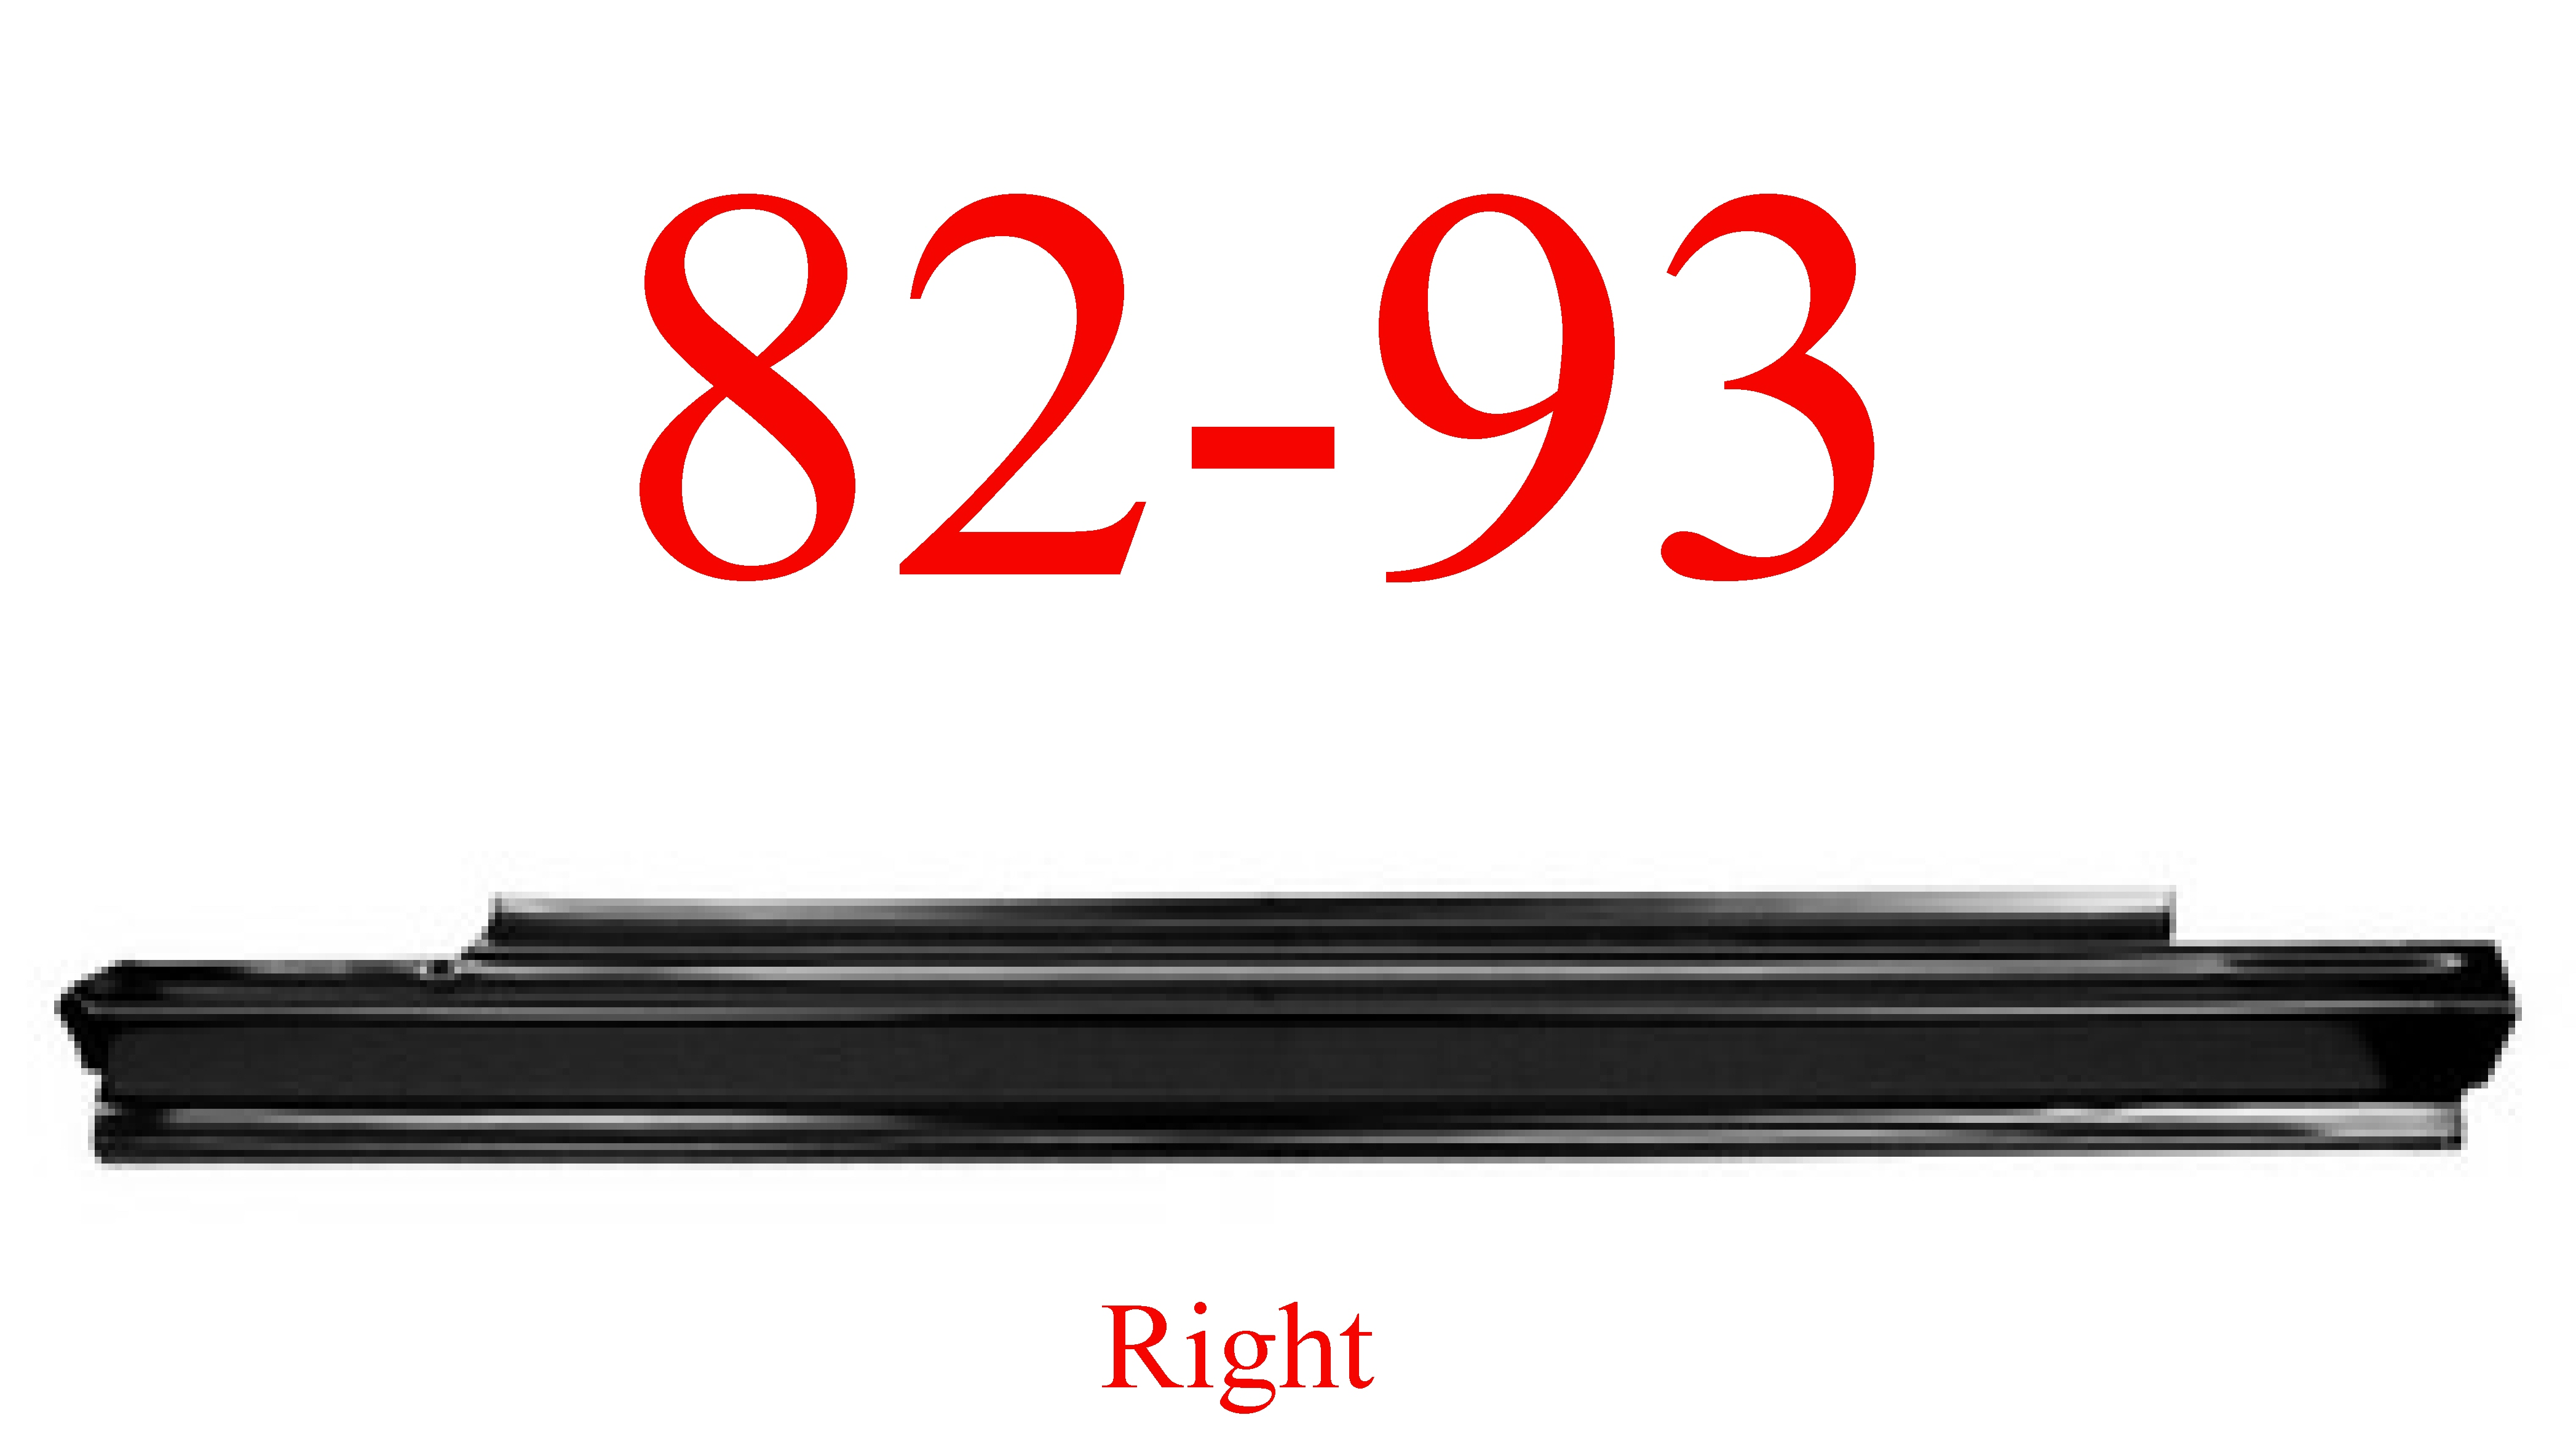 82-93 Chevy S10 Right Slip-On Rocker Panel